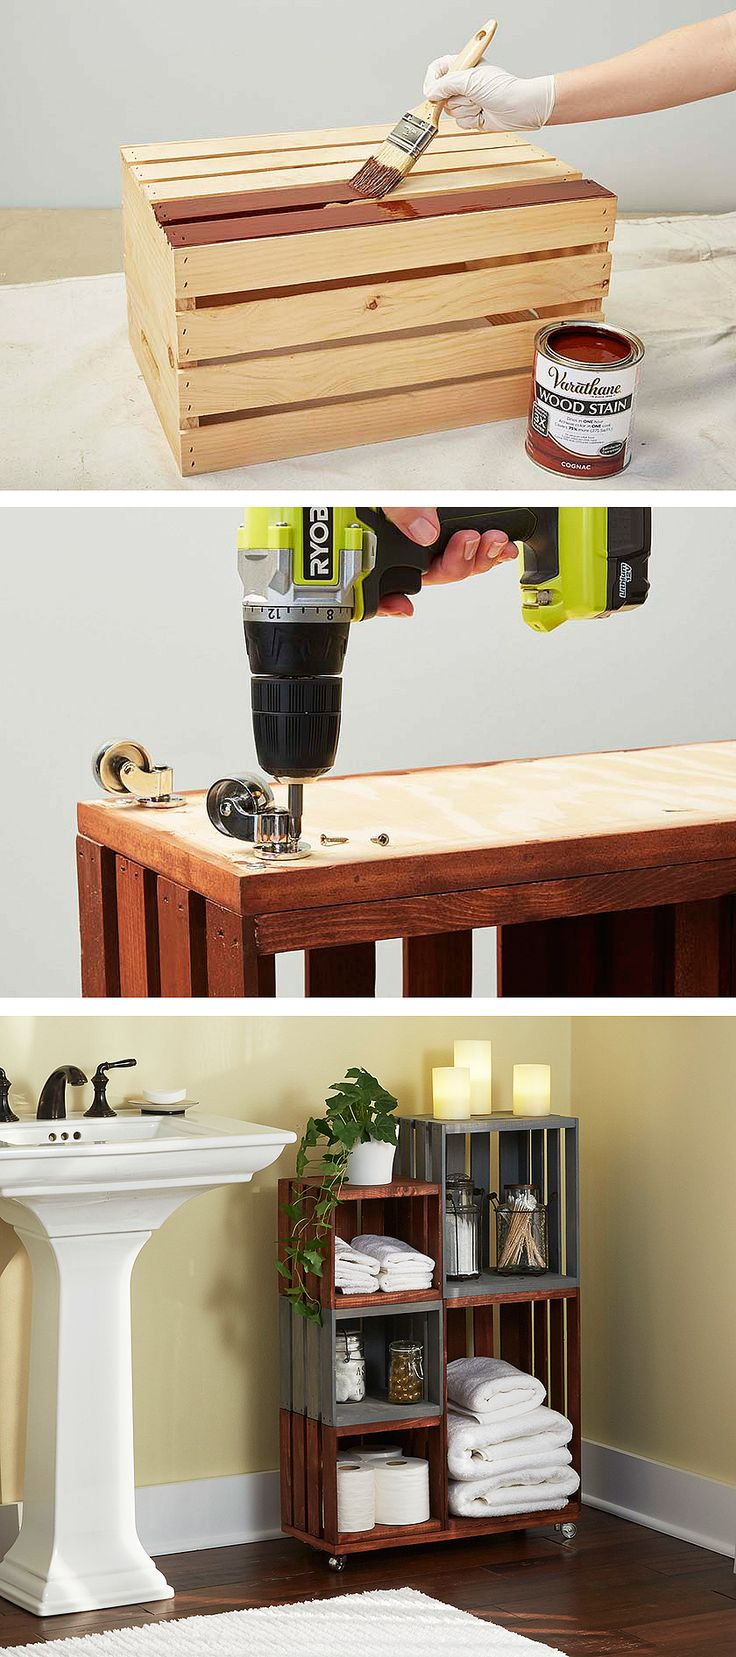 Interior Bathroom Diy Ideas best 25 diy bathroom ideas on pinterest small storage shelves made from wooden crates